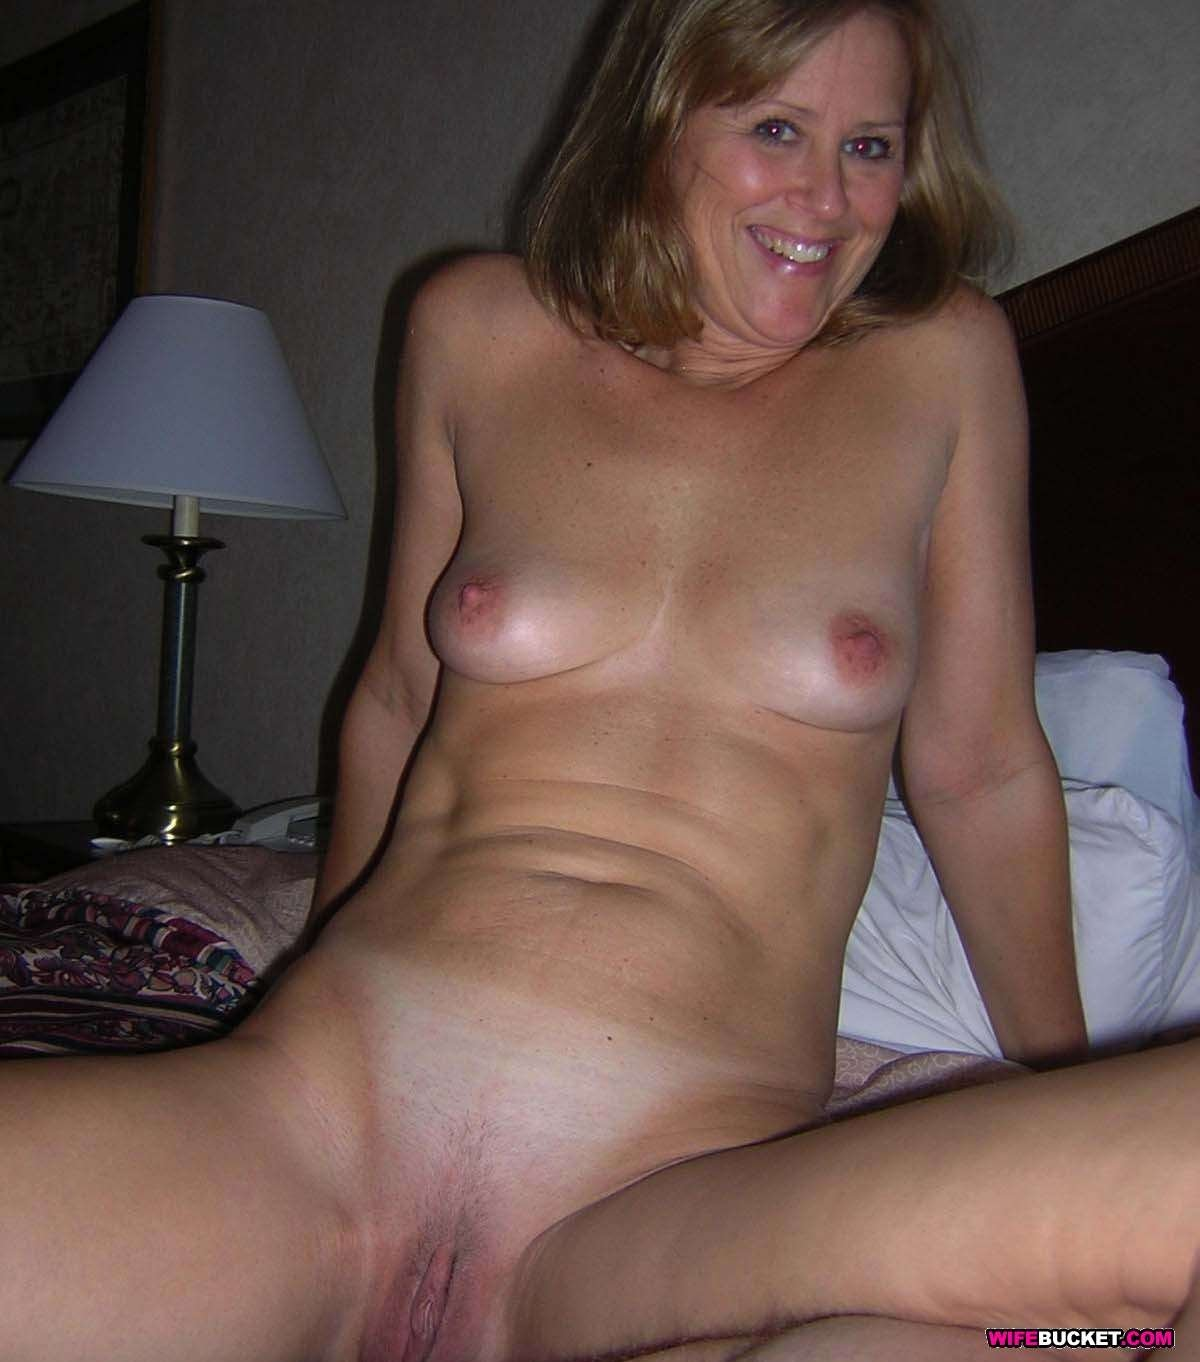 xvideos my girlfriend